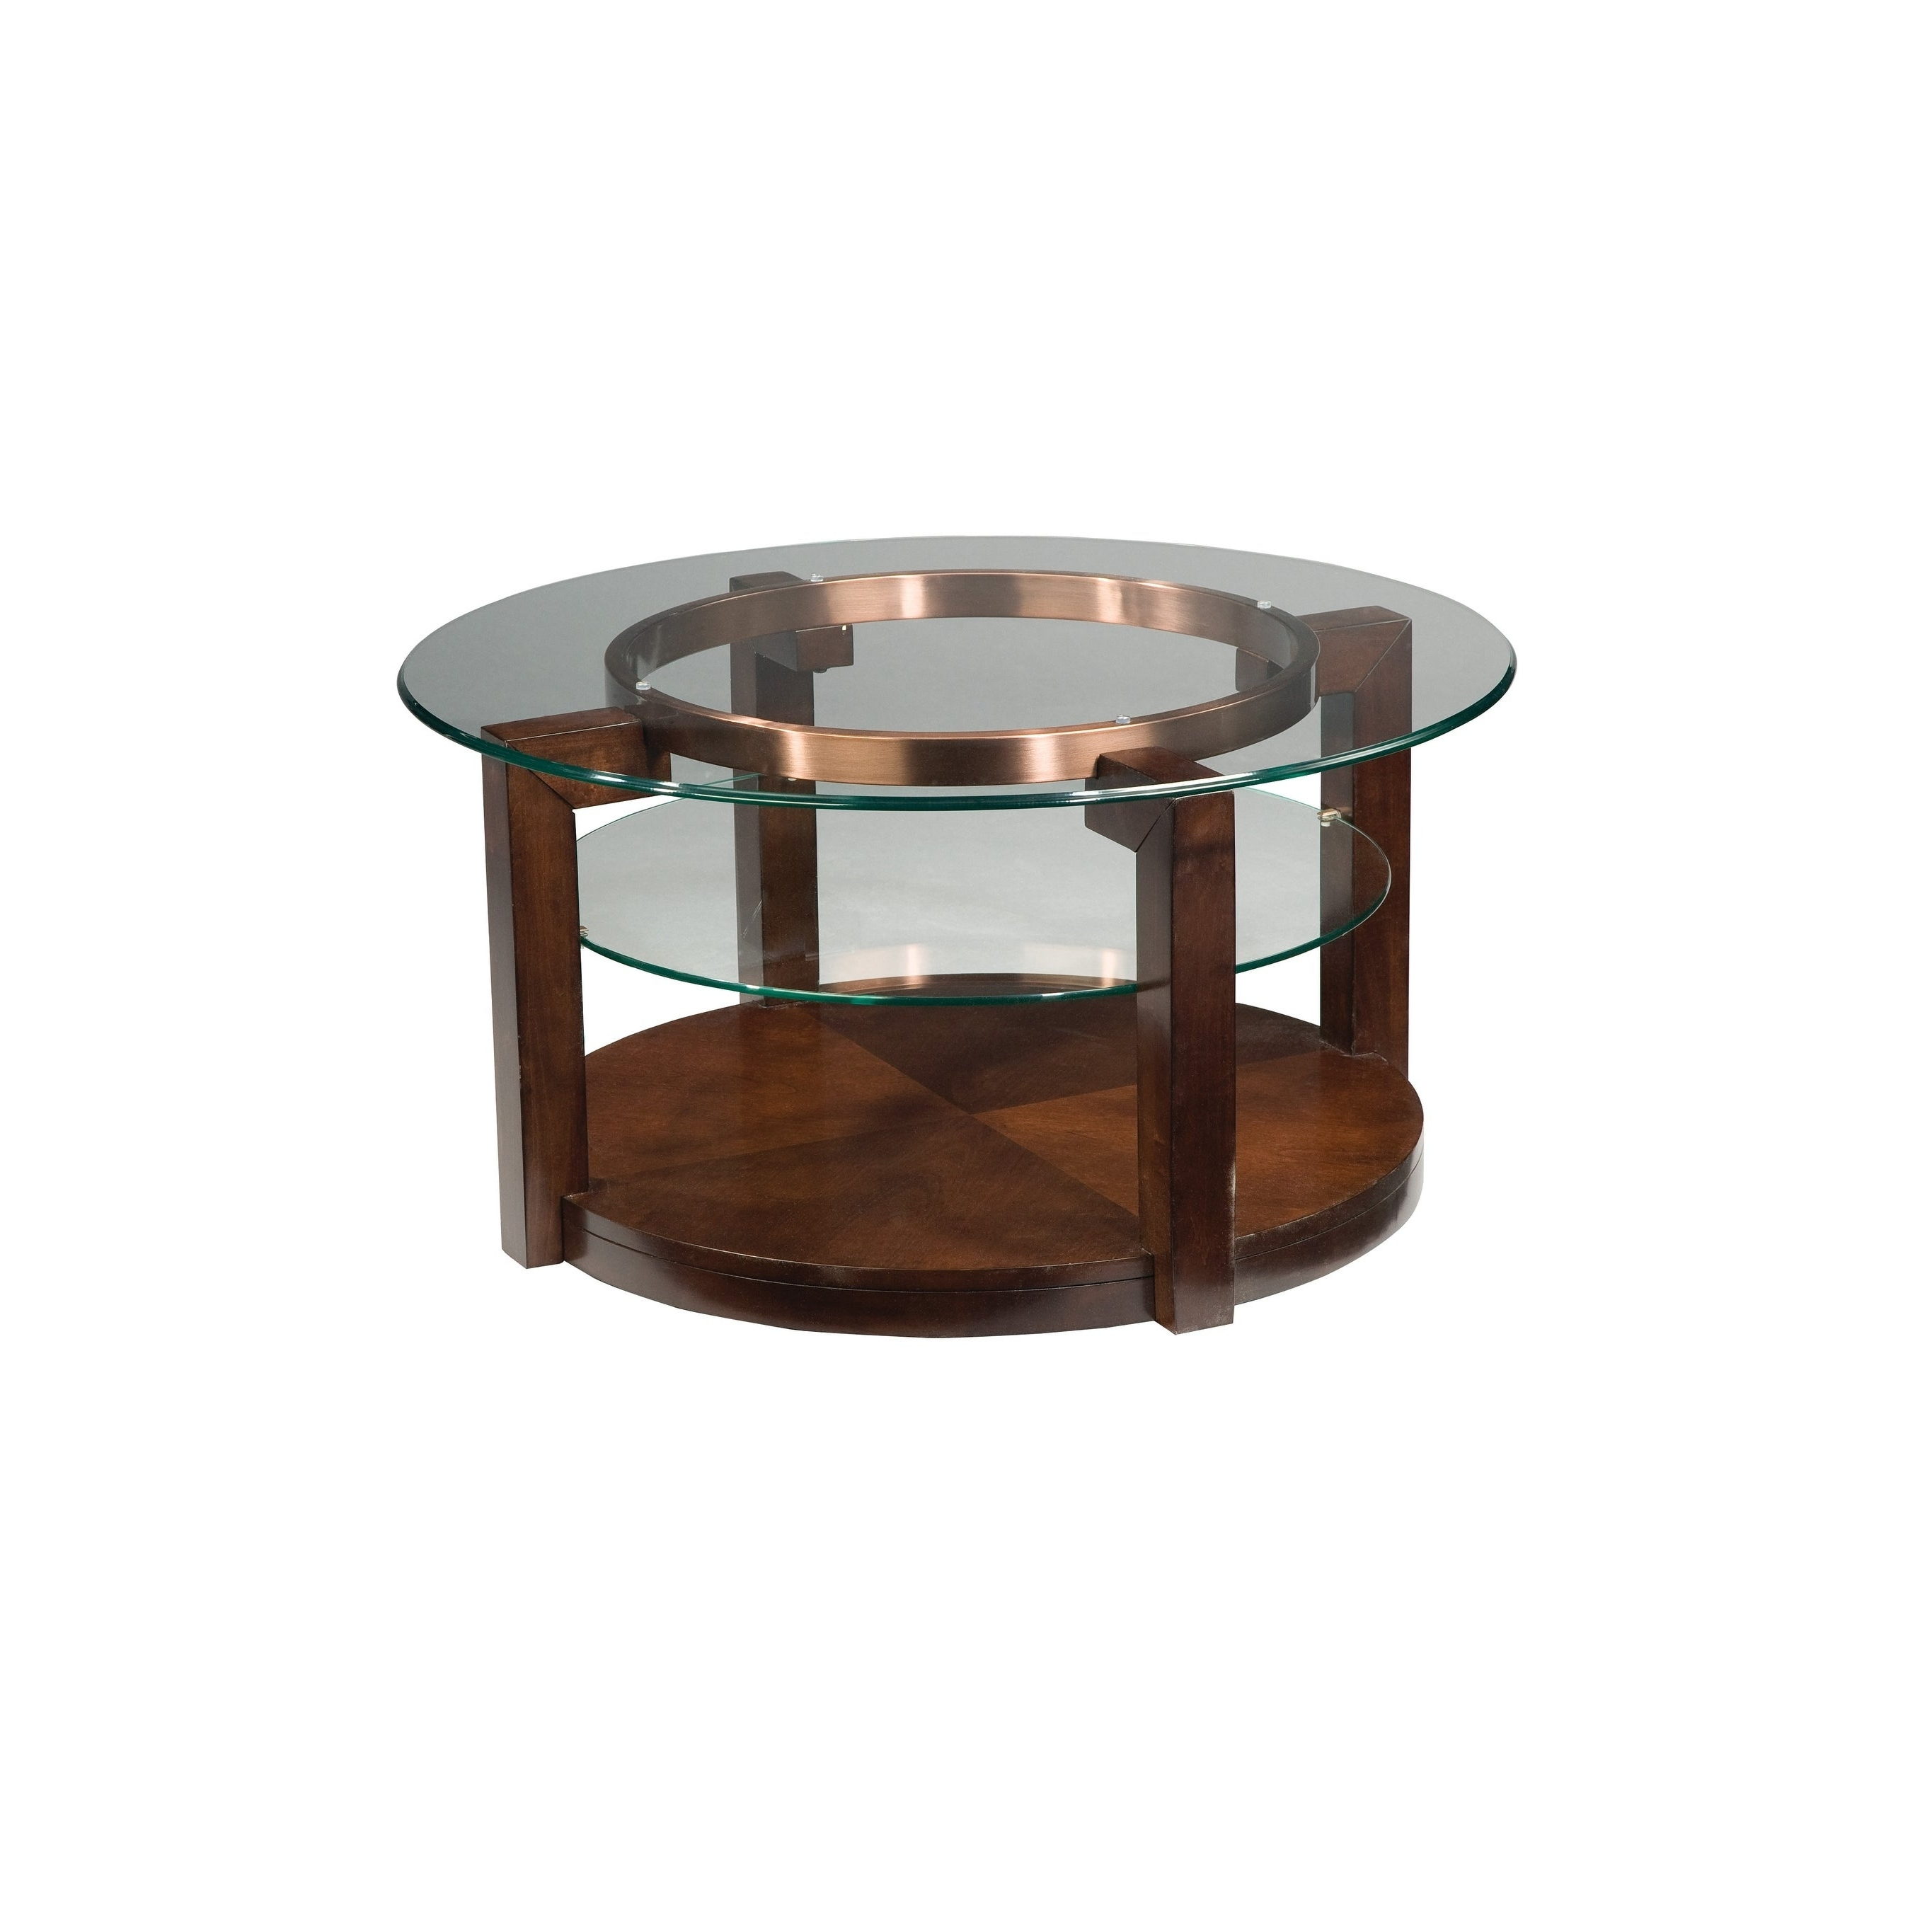 Standard Furniture Coronado Brown Wood/glass Round Coffee Table With Casters Pertaining To Current Copper Grove Halesia Chocolate Bronze Round Coffee Tables (View 17 of 20)